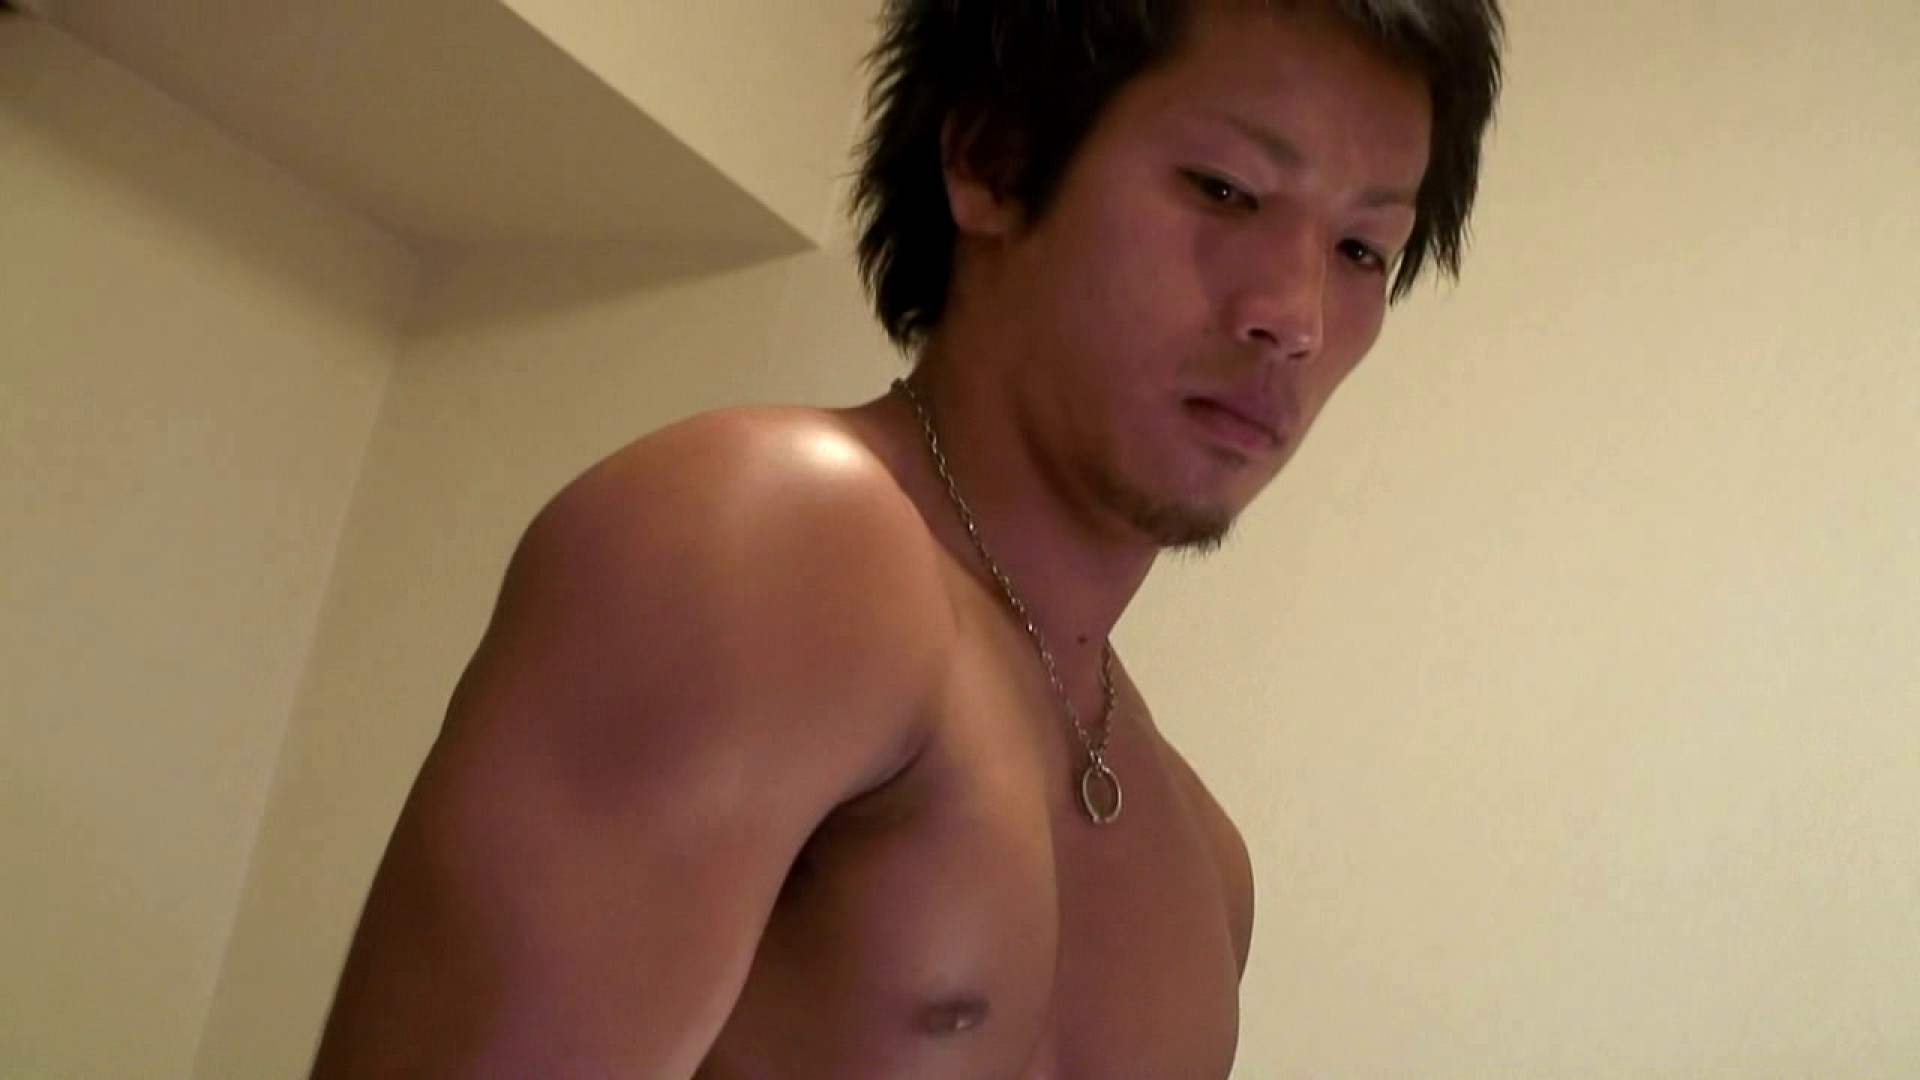 muscle warrior ~男根肉弾戦~03 男・男 ゲイエロビデオ画像 98pic 52